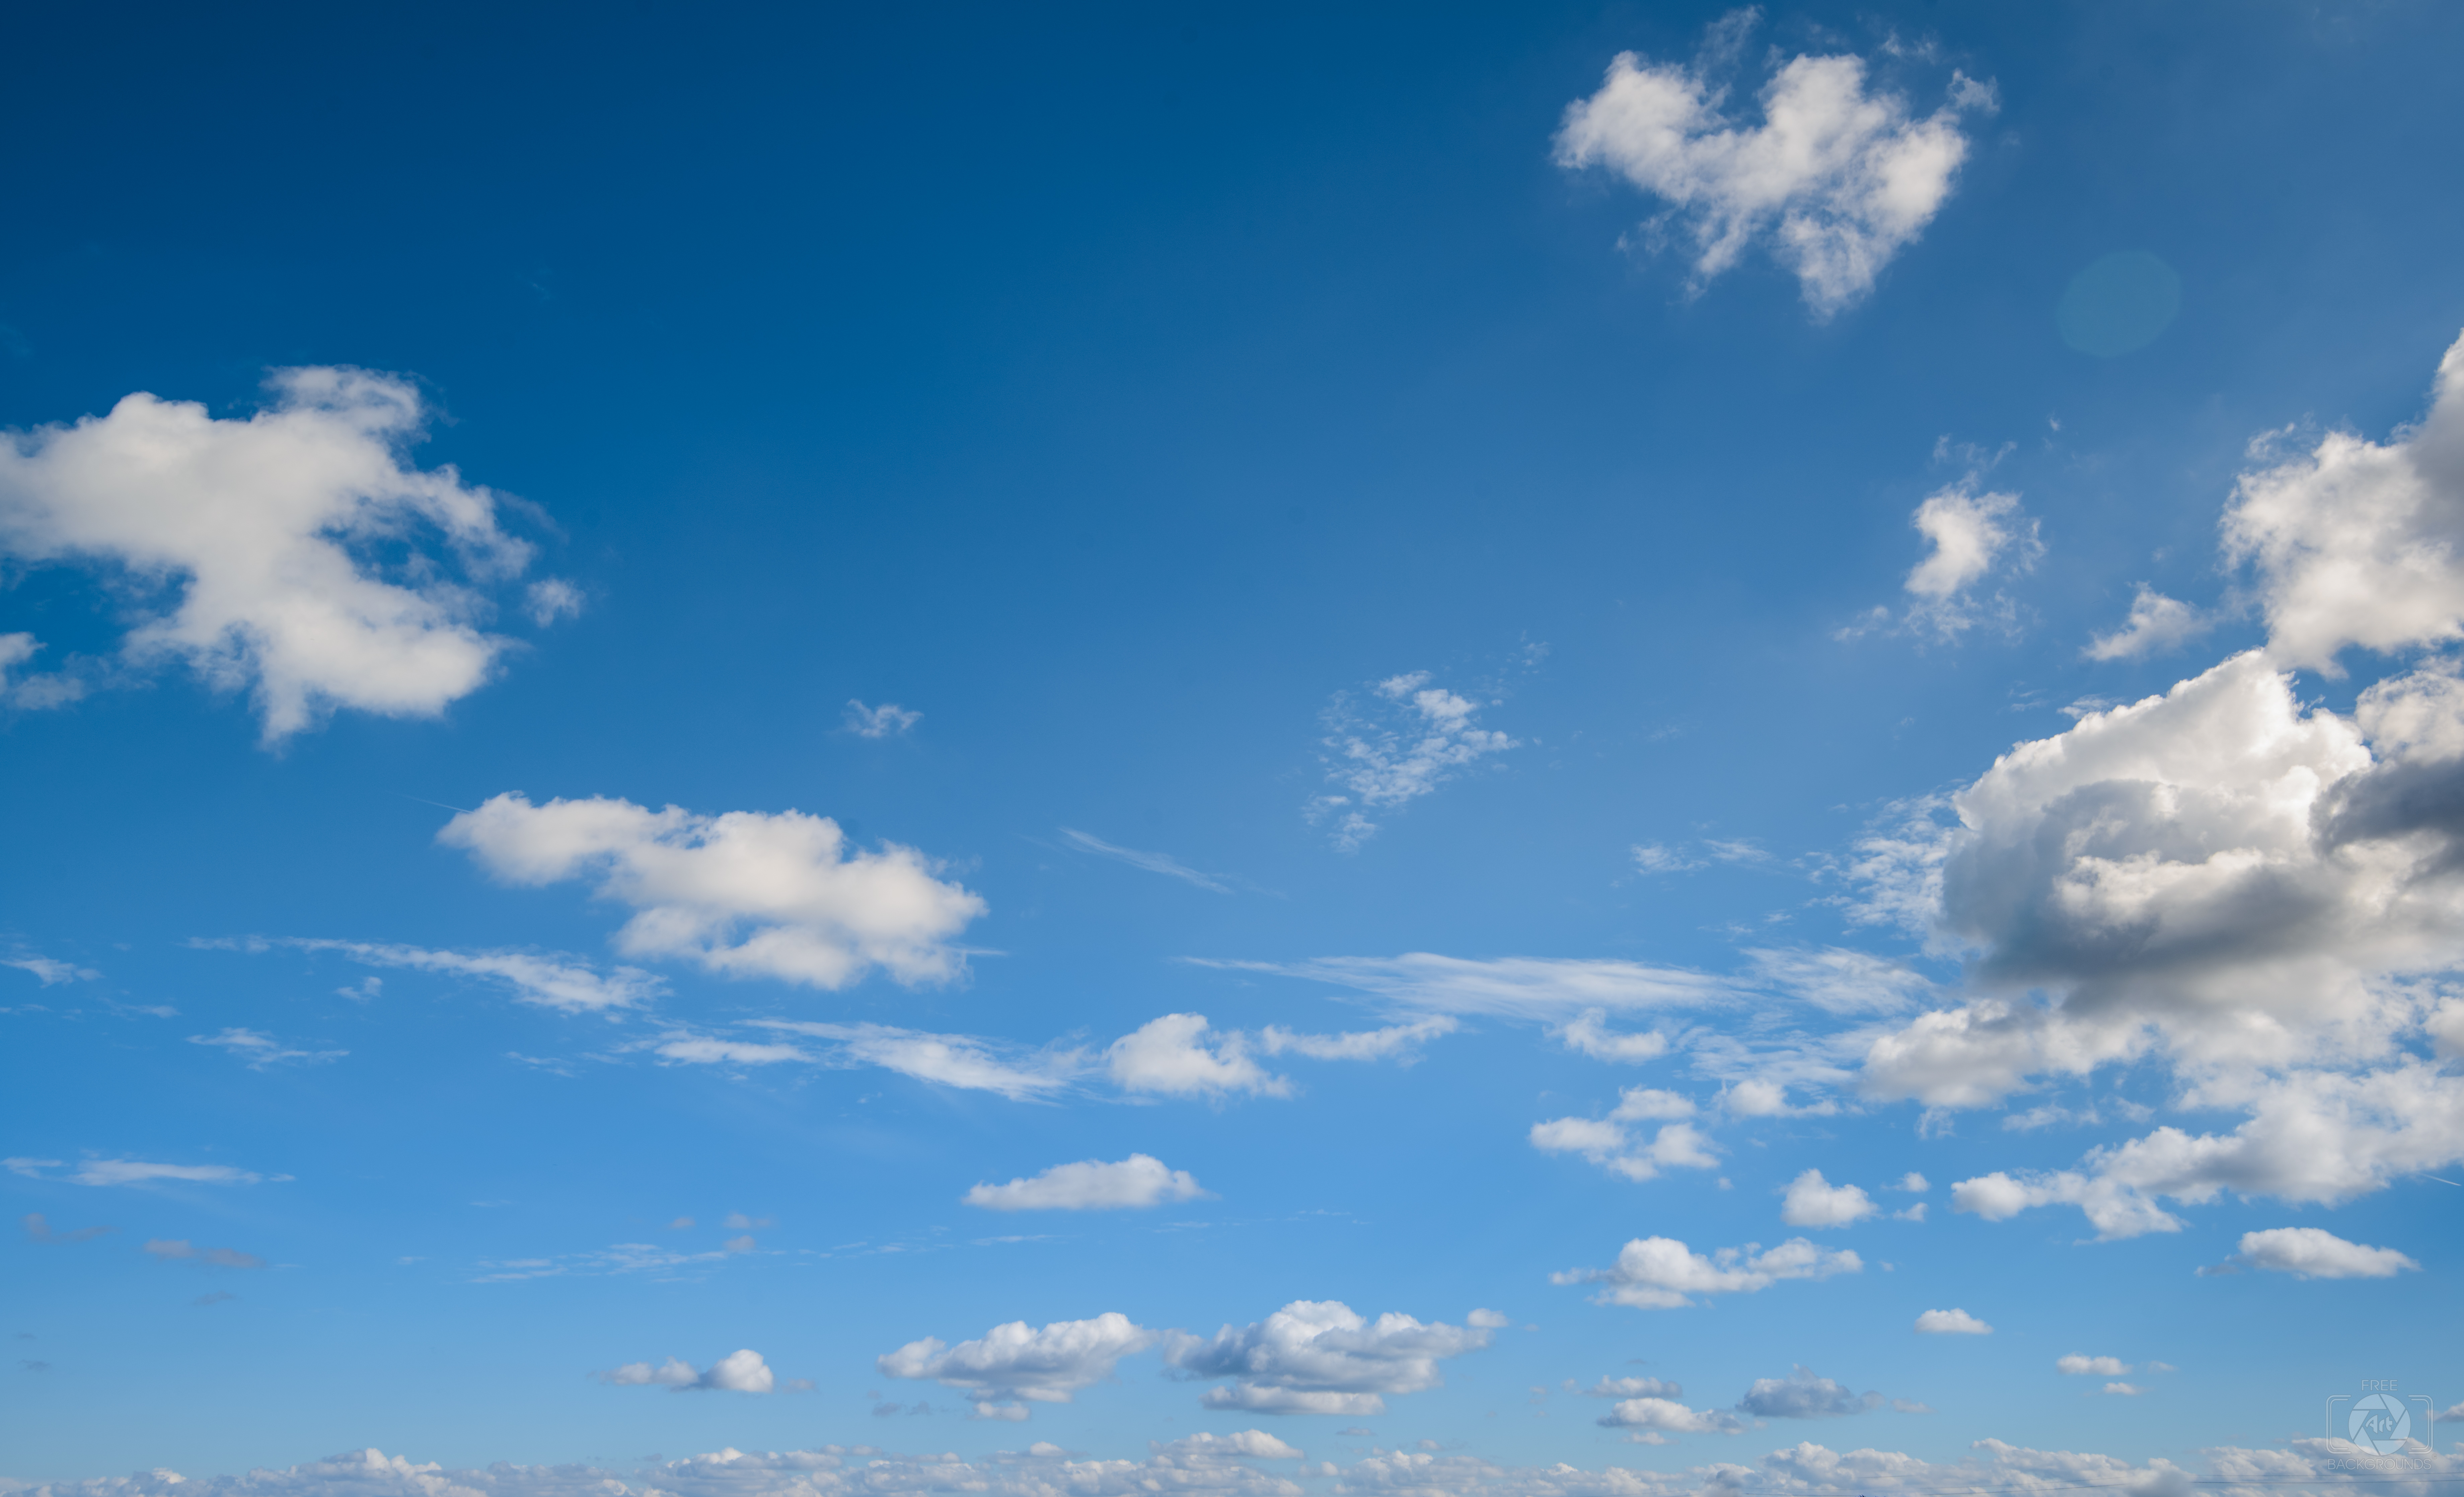 Beautiful Sky with Clouds Background   High quality Backgrounds 7359x4471